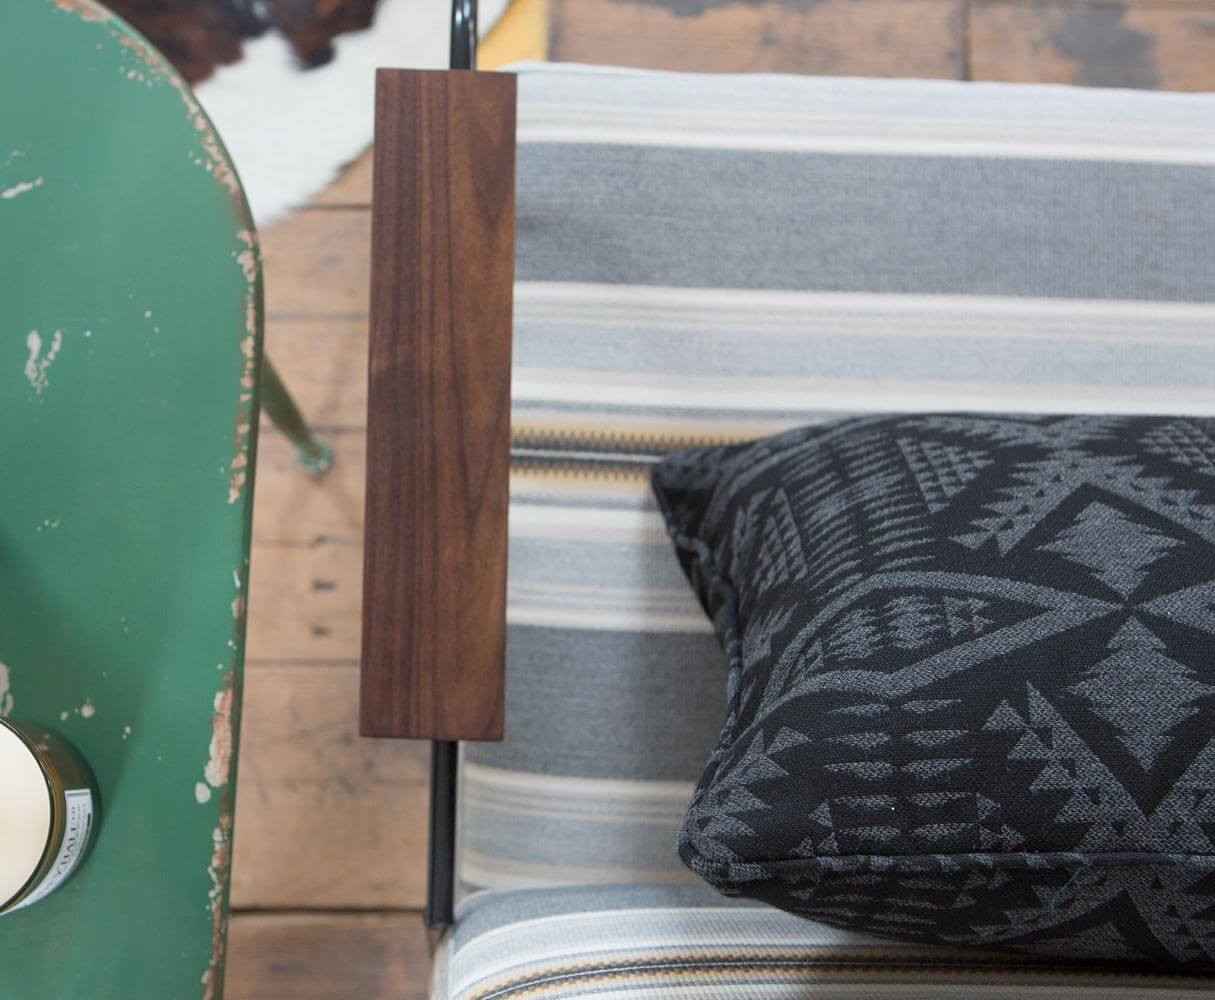 A grey striped chair is shown with a black and grey patterned pillow.